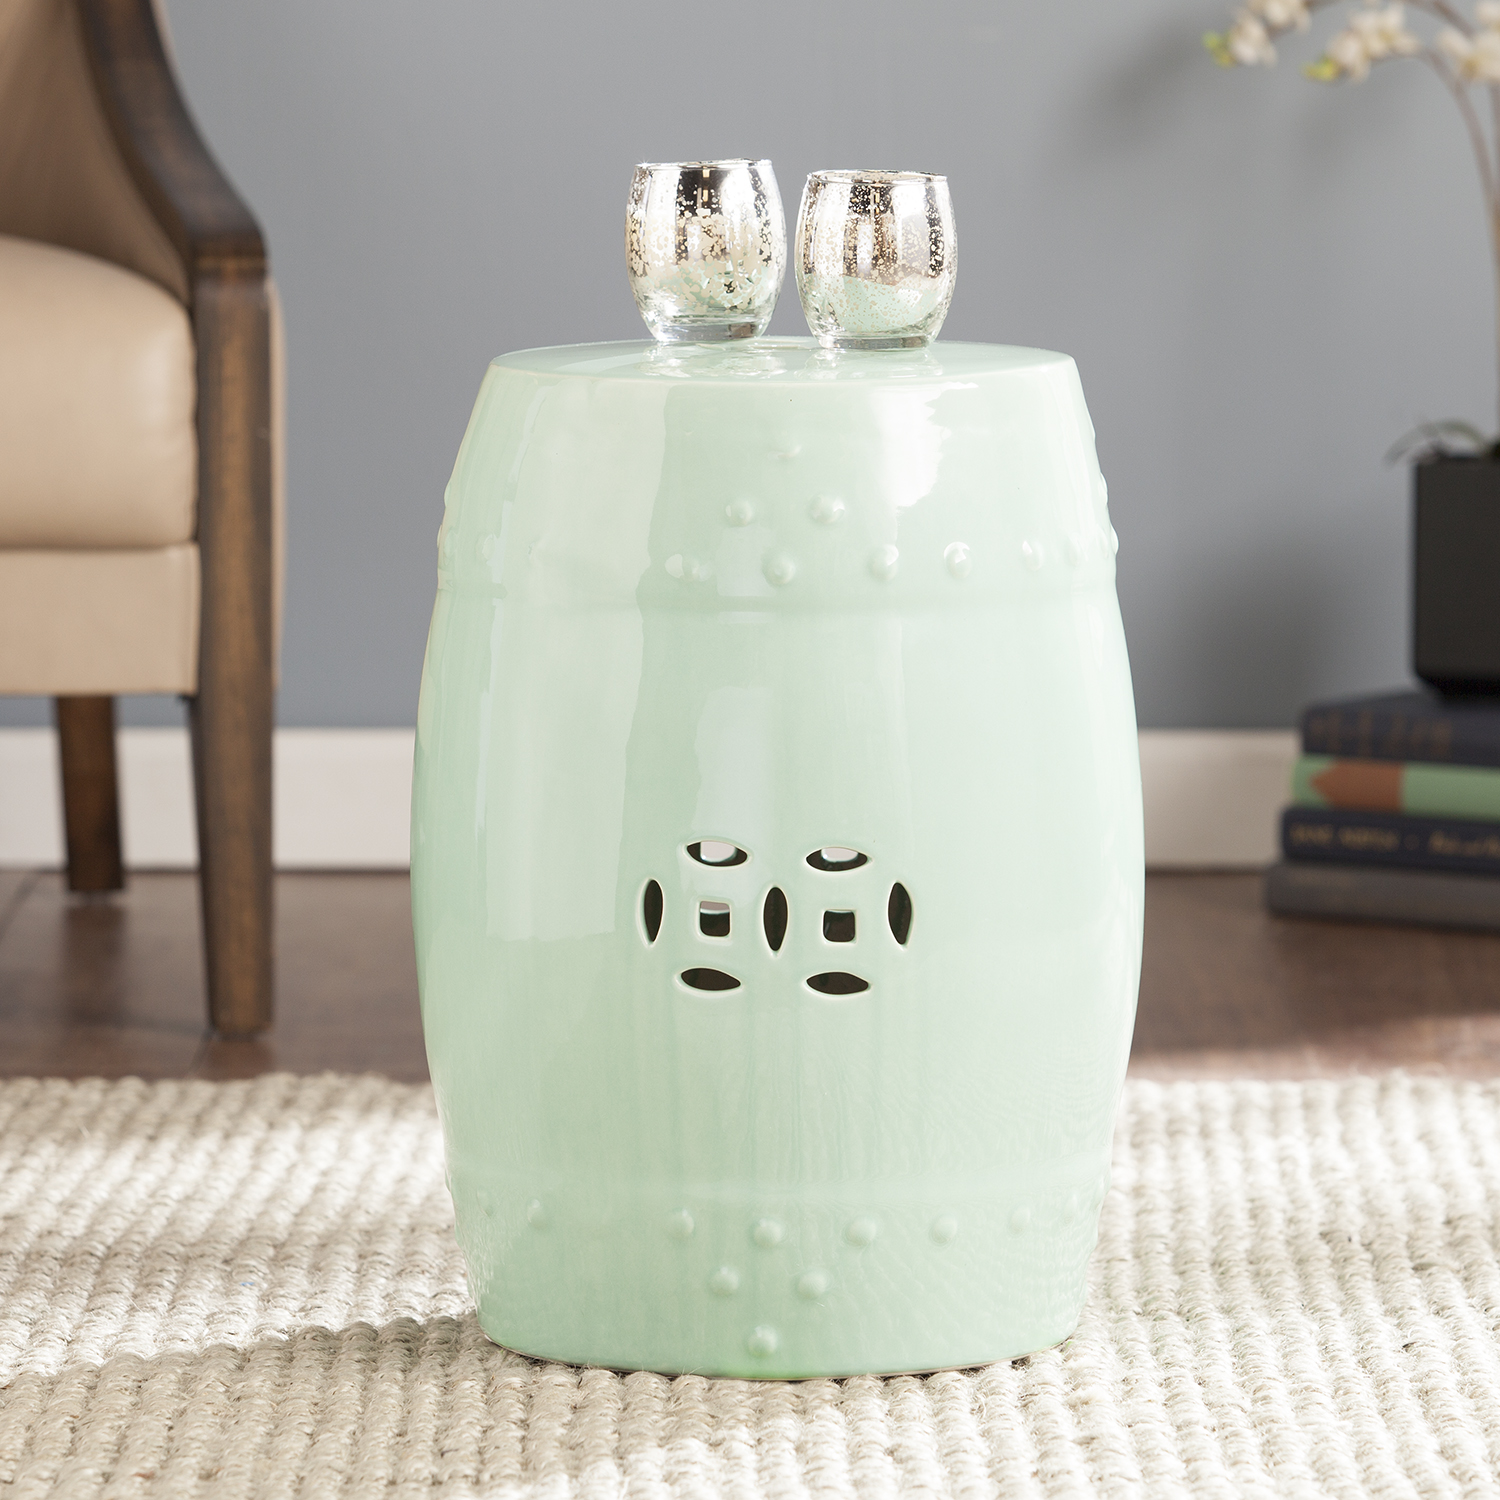 salinas seafoam green ceramic indoor outdoor accent table stool garden ashley home furniture shaped dale tiffany mini pendant lights white round coffee with storage custom butcher